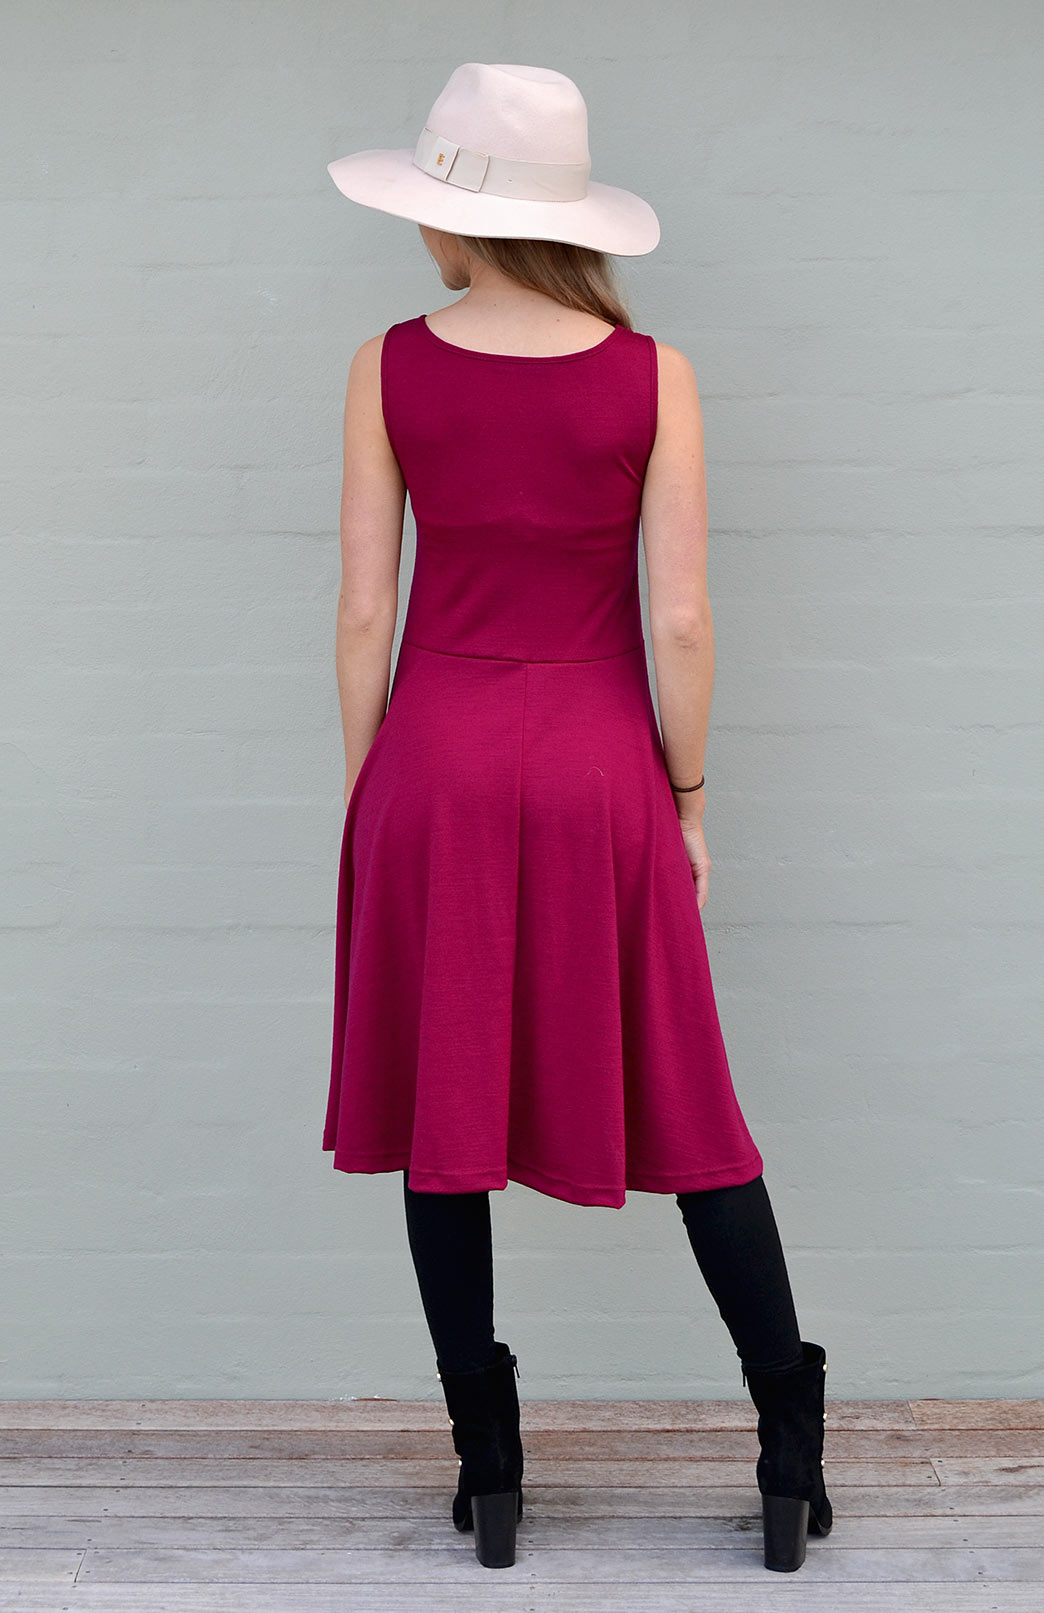 181ad55723c75 MaryAnn Fit and Flare Dress - Women s Merino Wool Sleeveless Mary Dress  with Pockets - Smitten. Enlarge